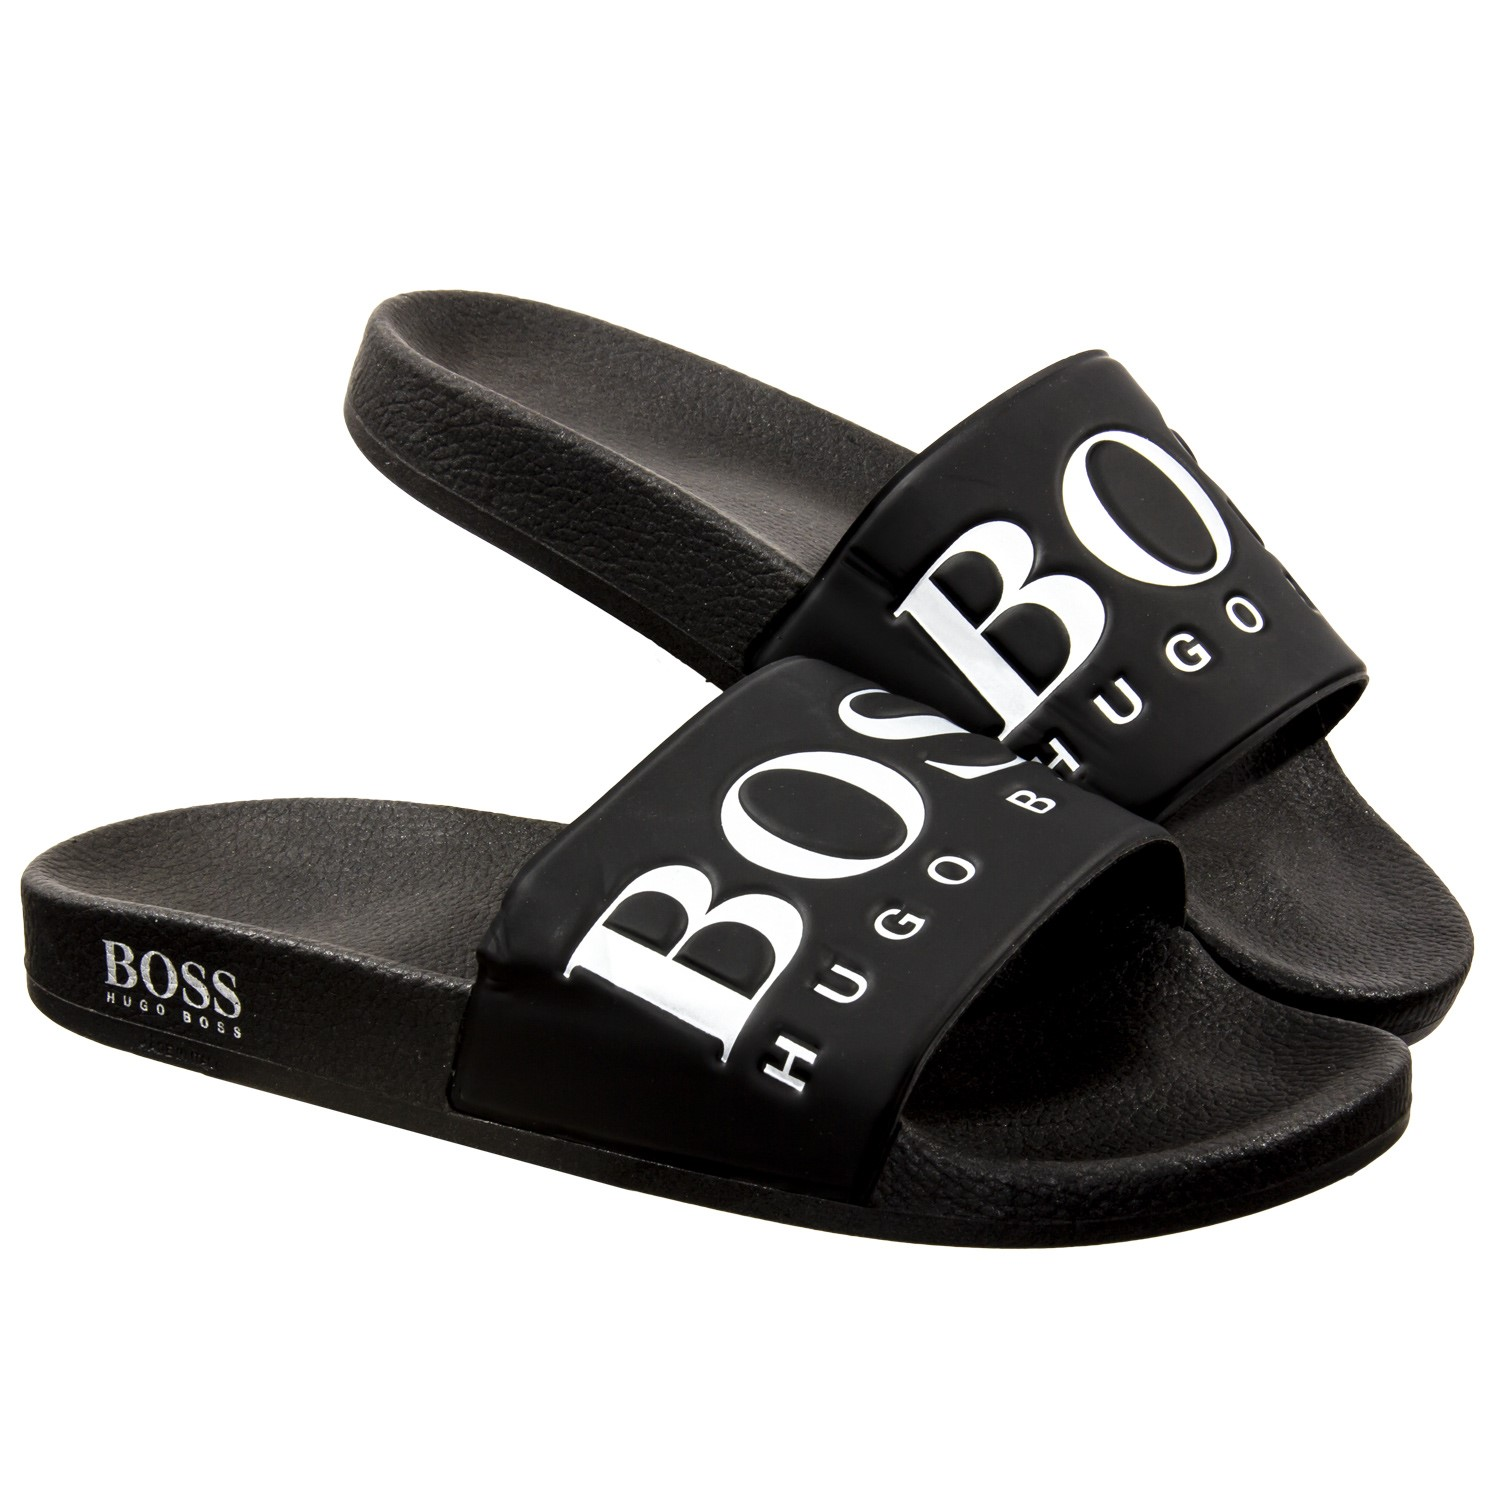 Hugo Boss Slider Sandals